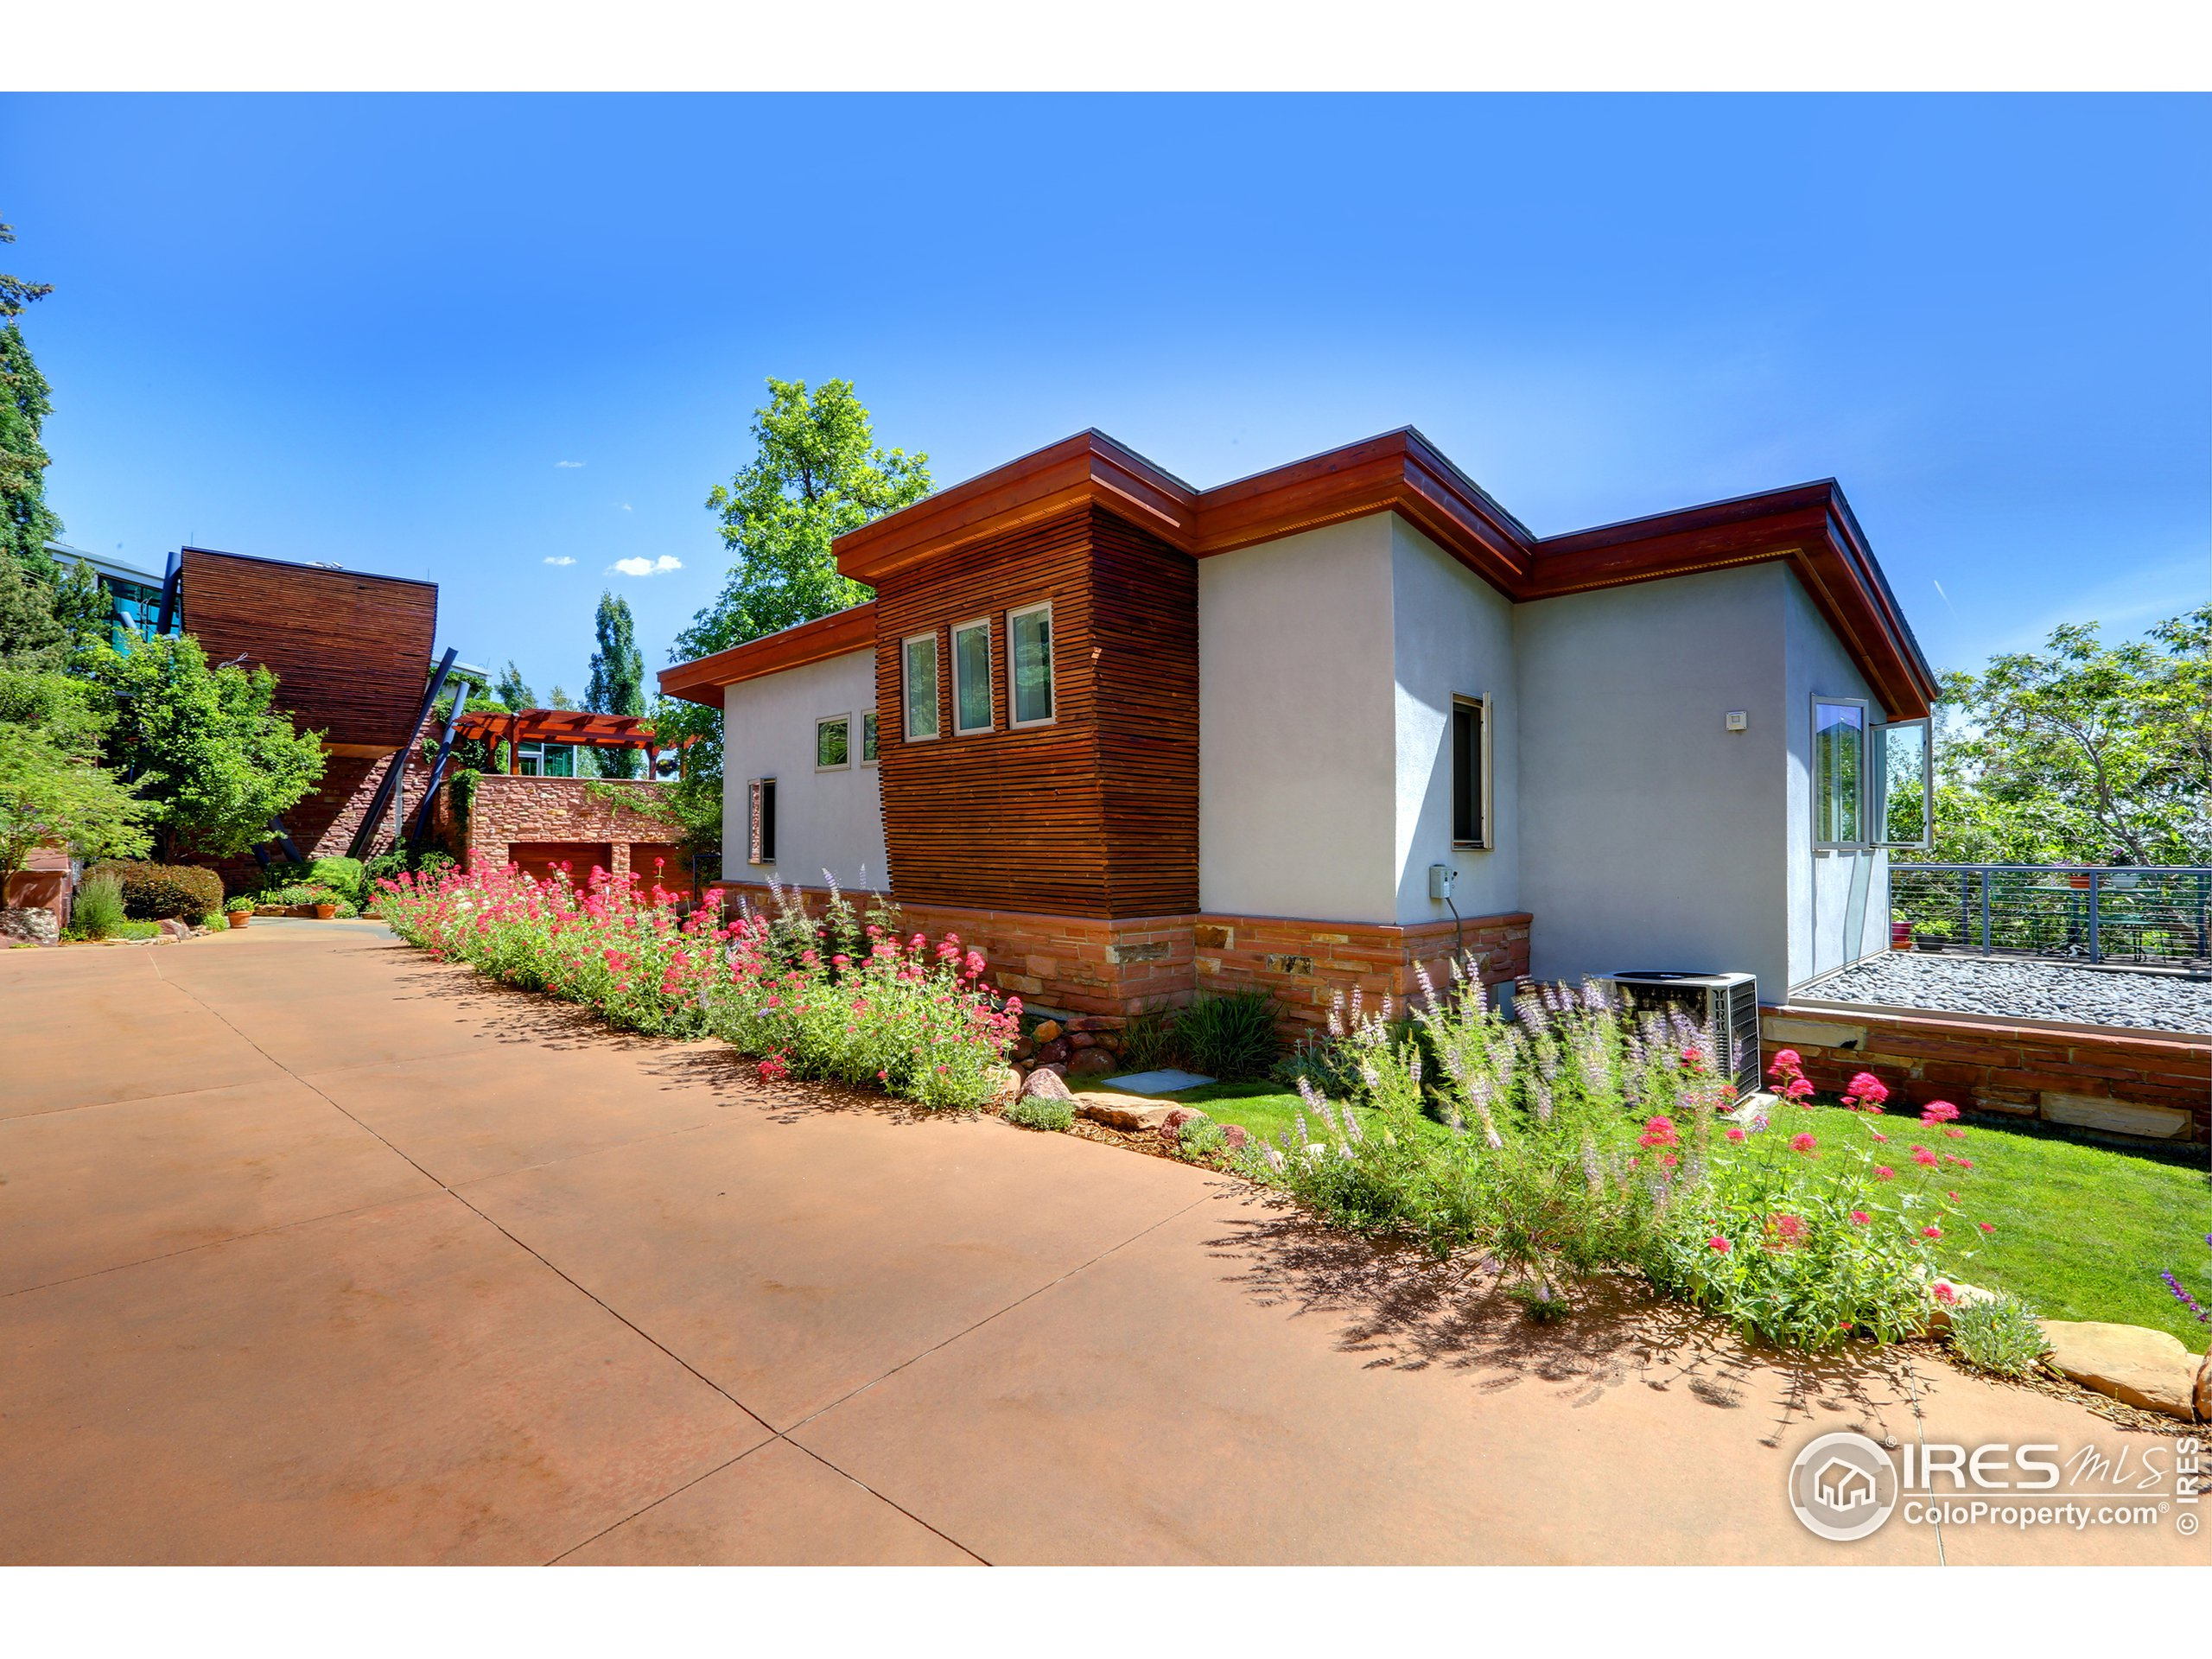 Detached Two-Story Guest House - 1579 SqFt